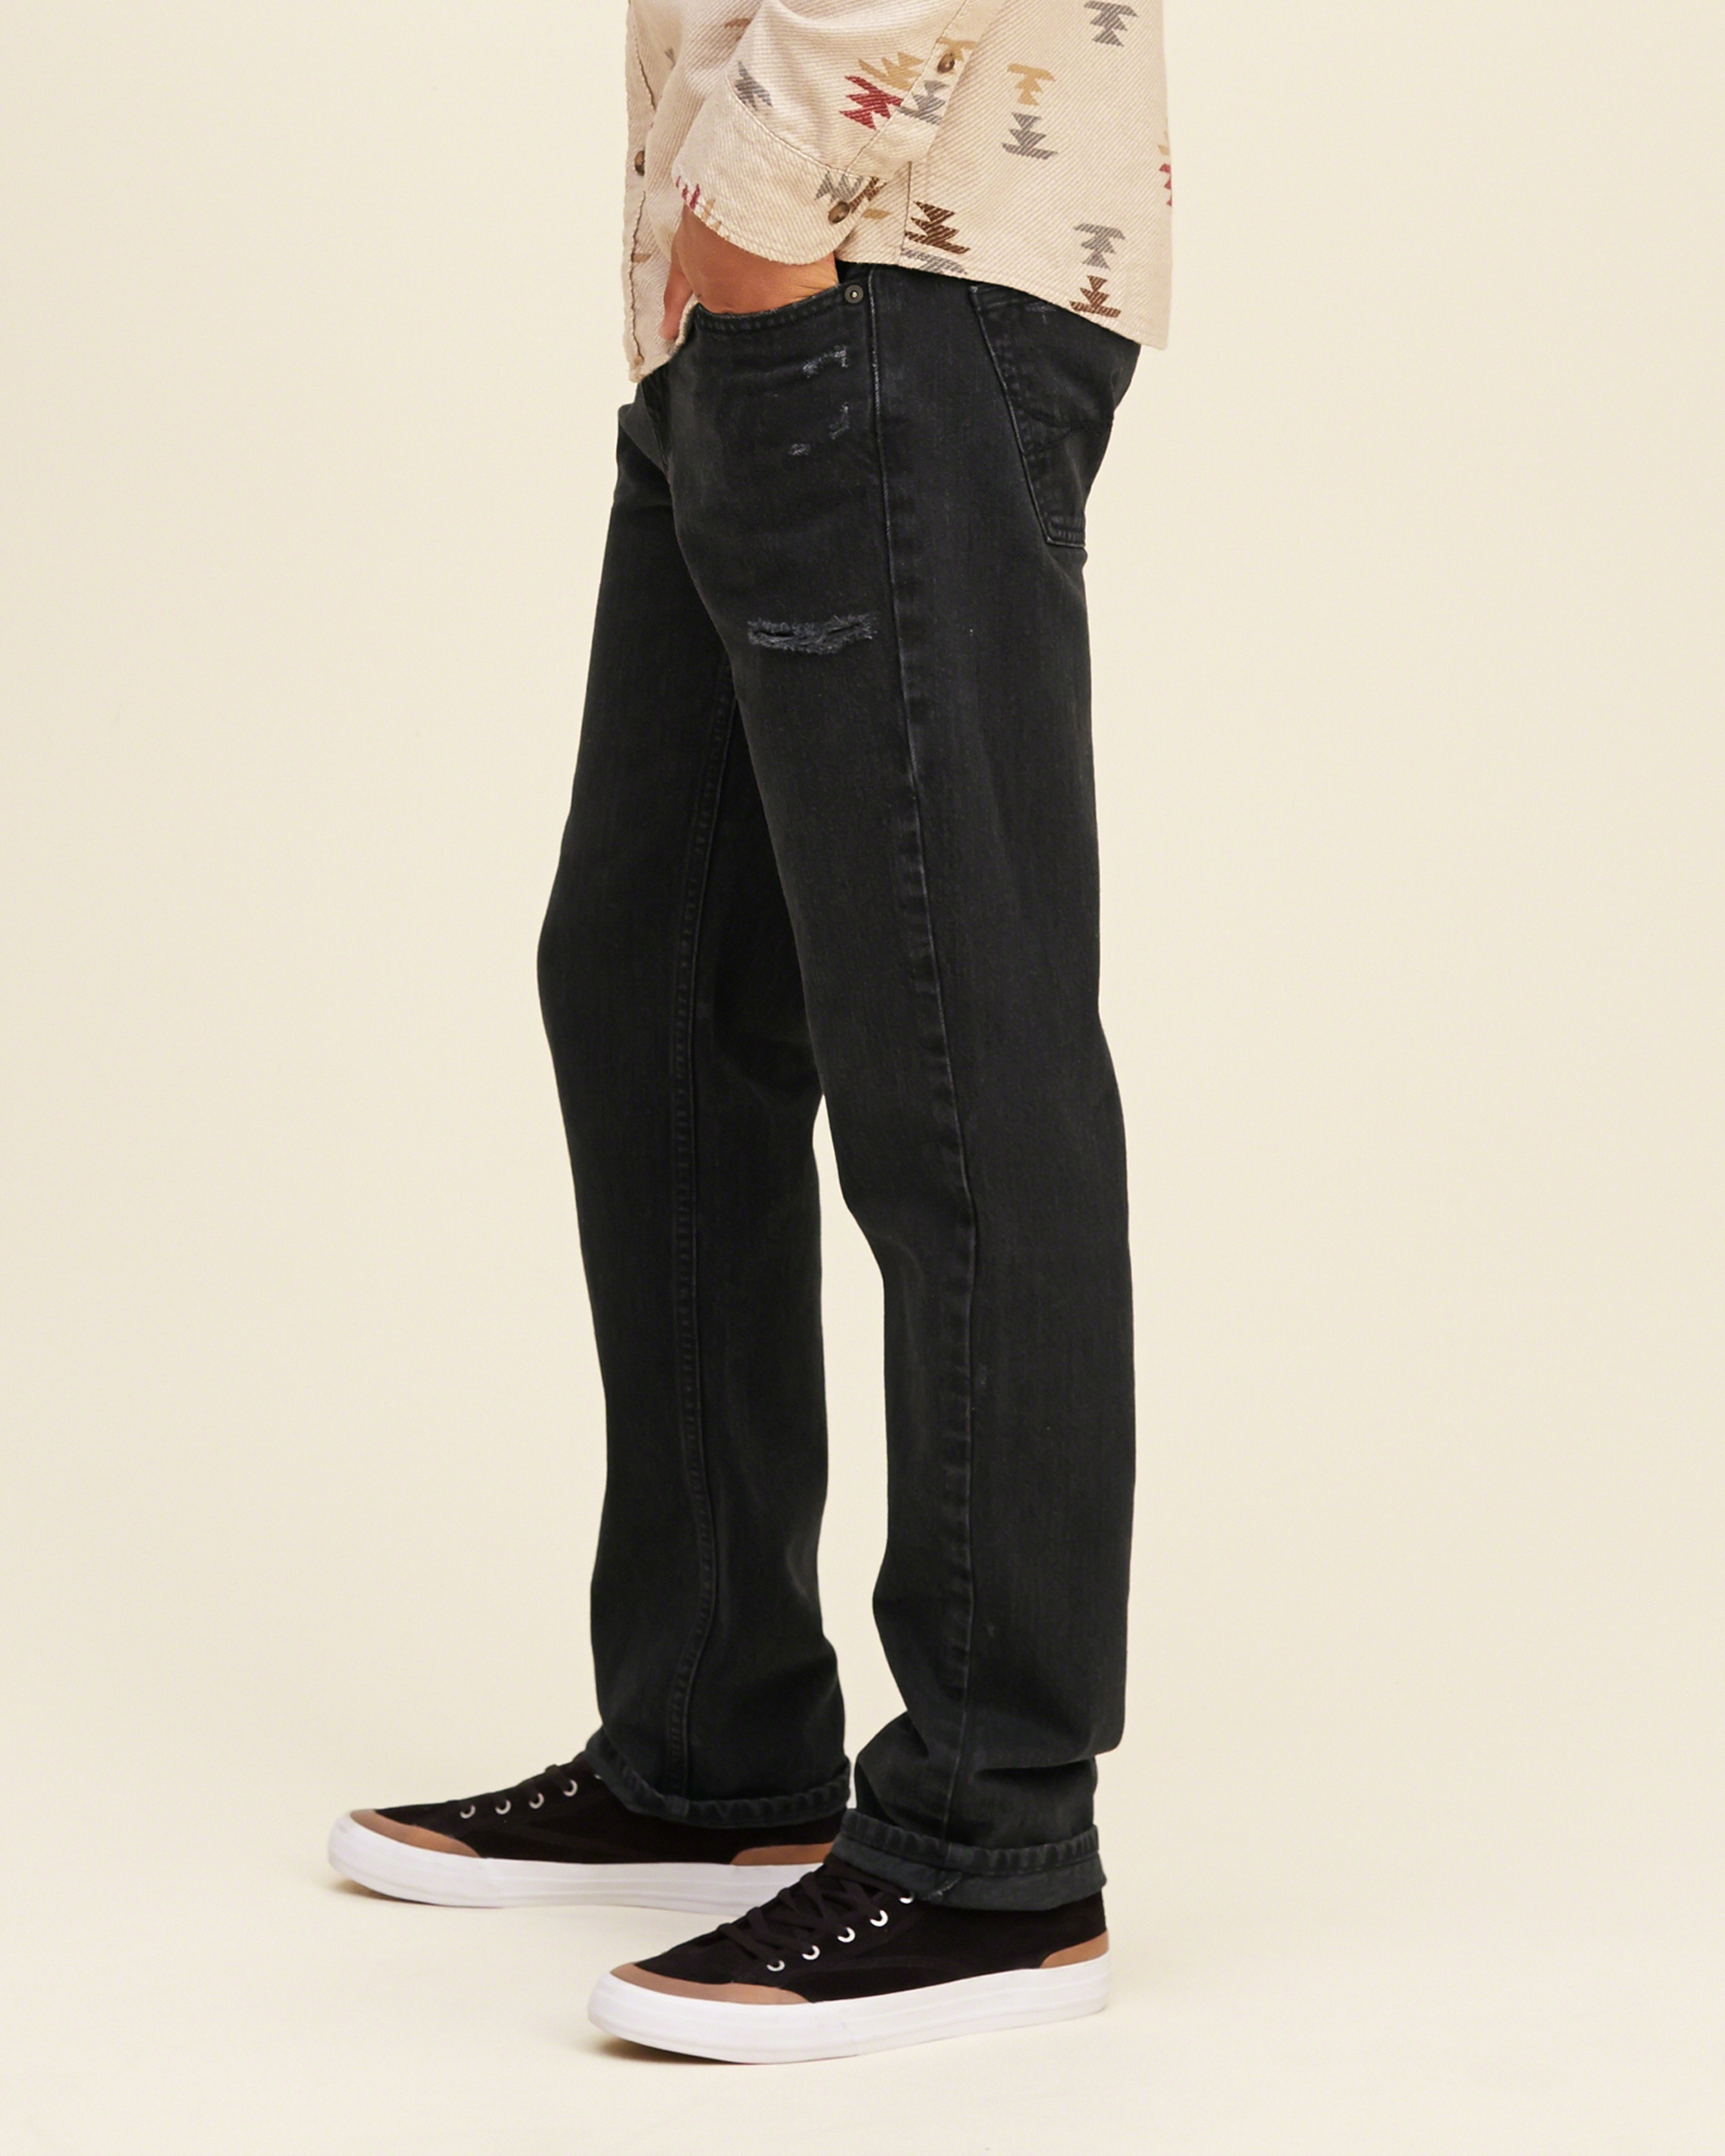 hollister dark jeans for men - photo #39